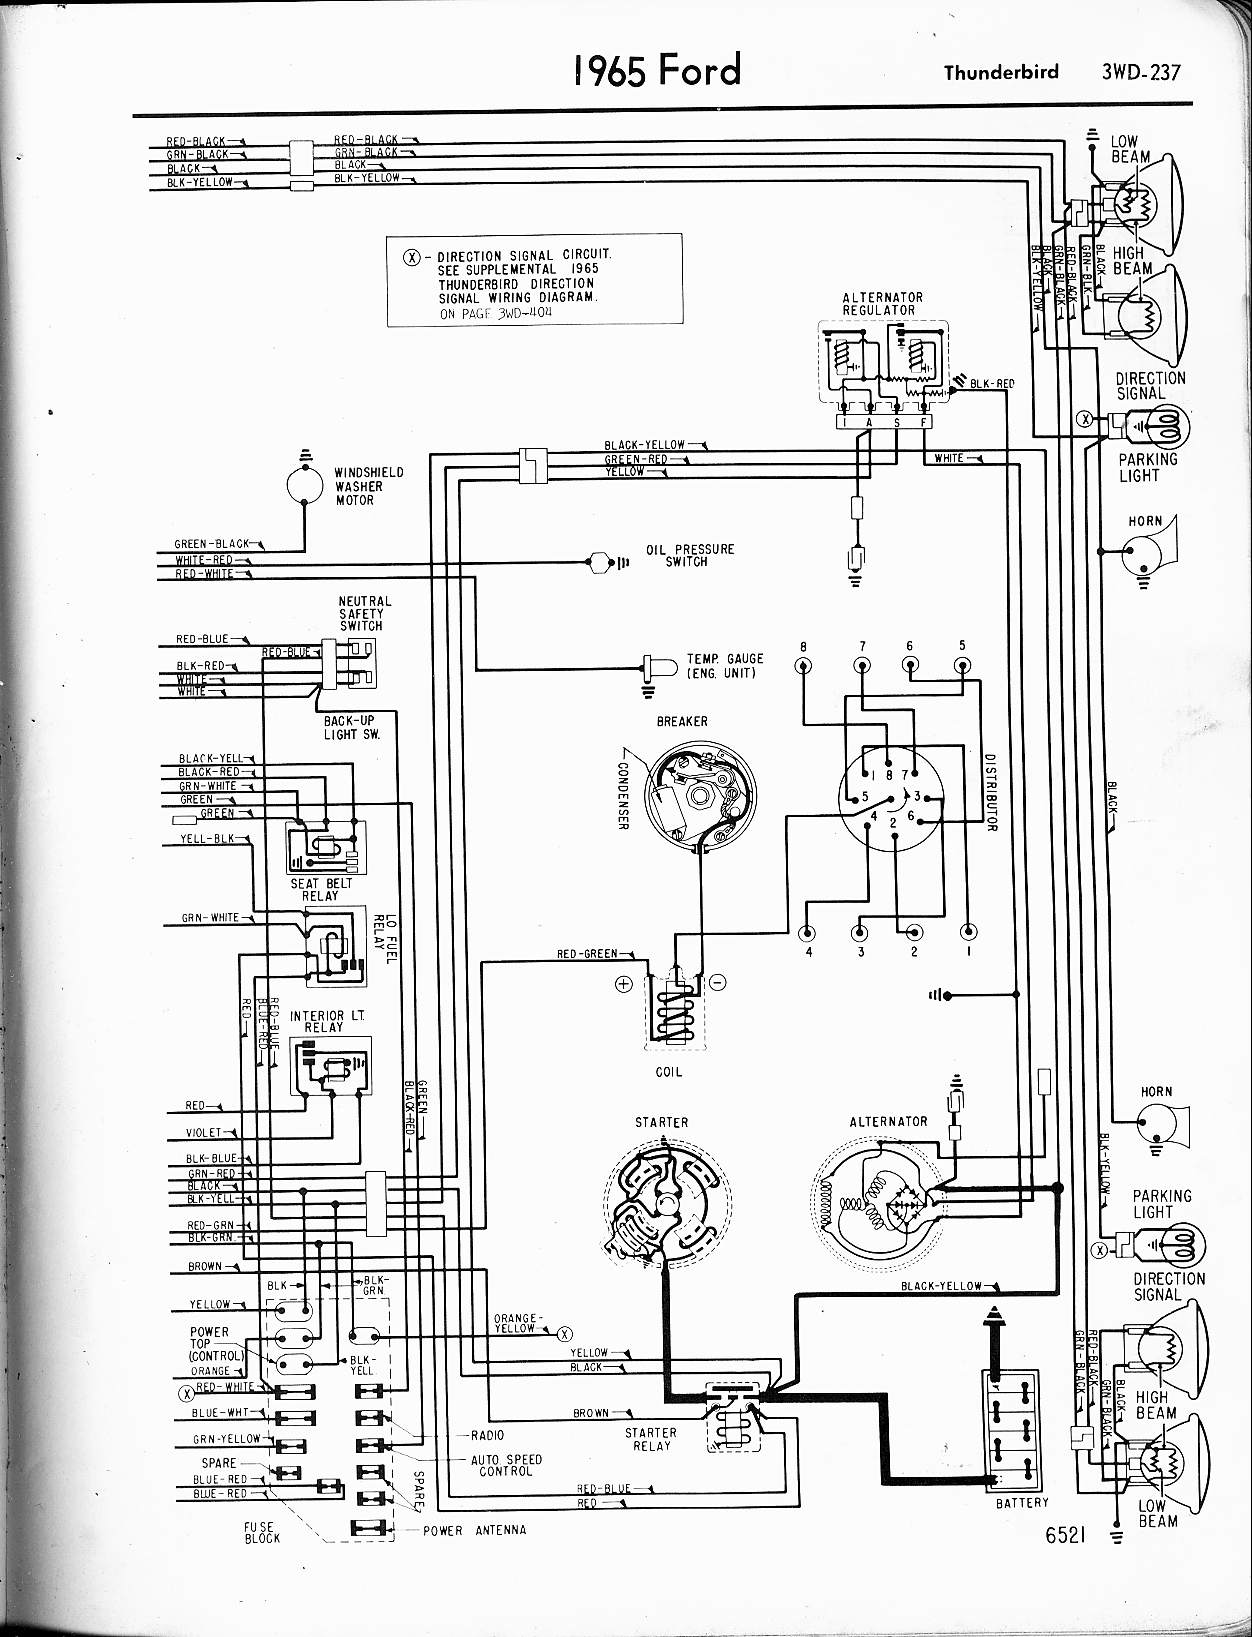 MWire5765 237 57 65 ford wiring diagrams Ford E 350 Wiring Diagrams at honlapkeszites.co